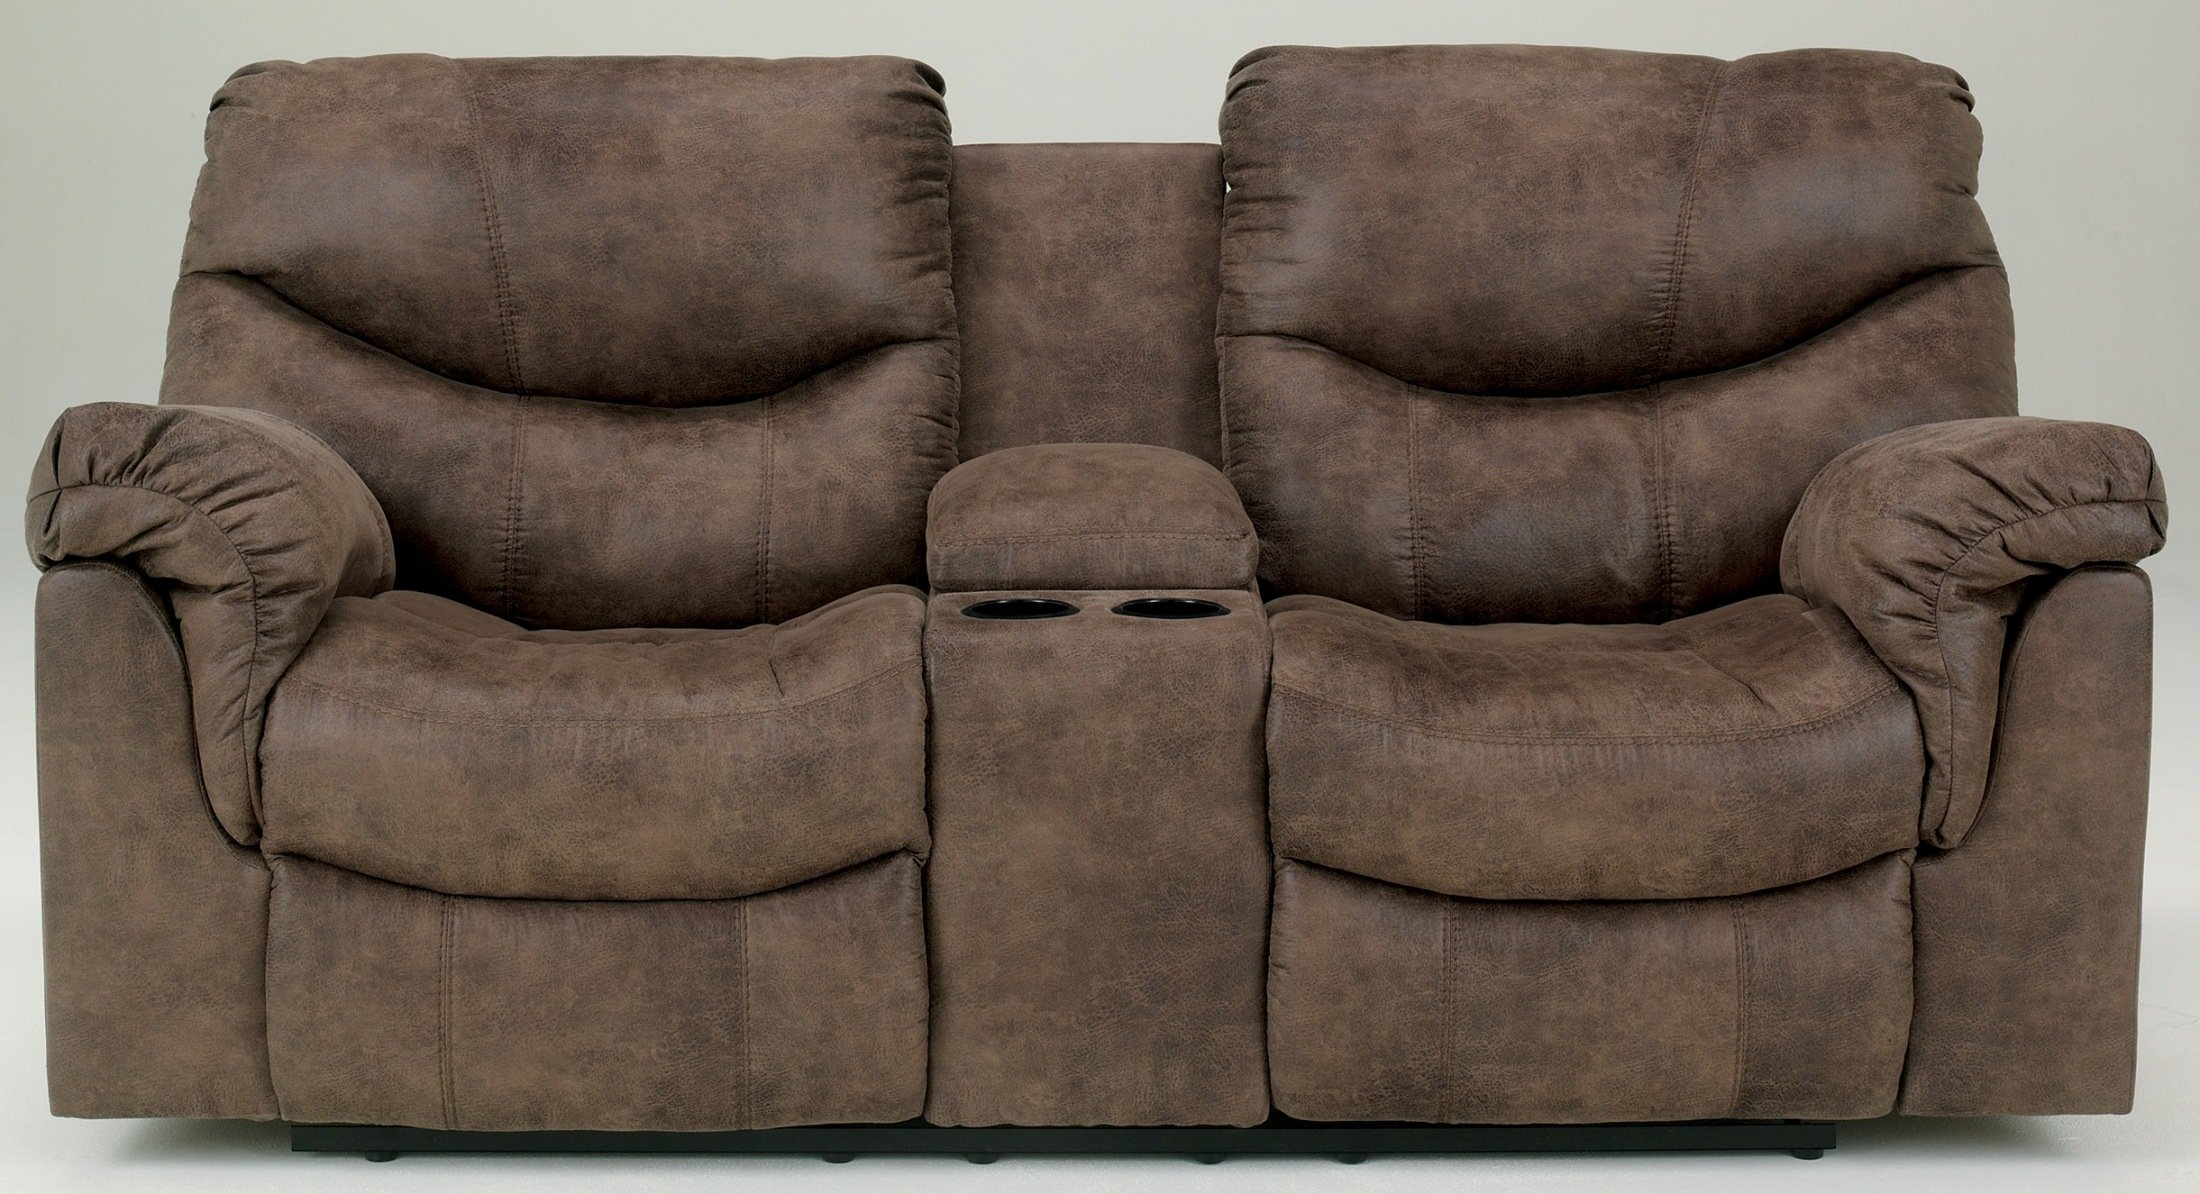 Ashley Furniture Signature Design - Alzena Power Recliner Loveseat with Console - 1 Touch Power Reclining - Gunsmoke